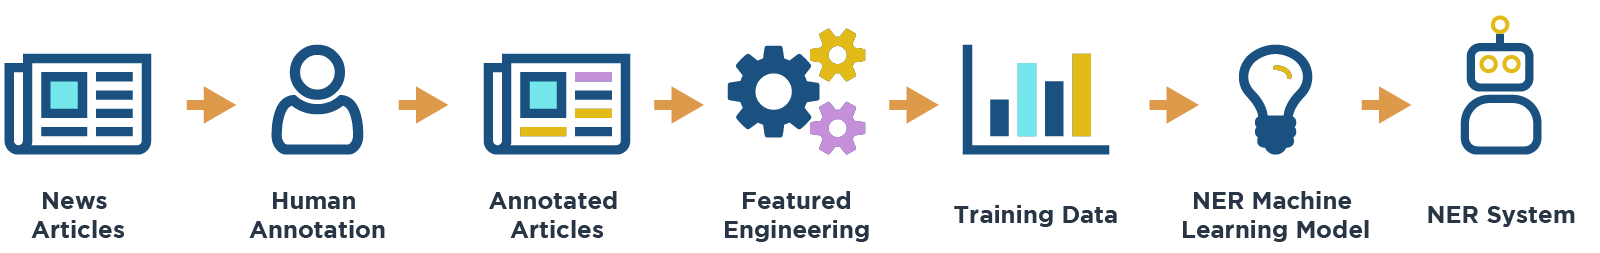 new articles -> human annotation -> annotated articles -> feature engineering -> training data ->NER Machine Learning Model -> NER system